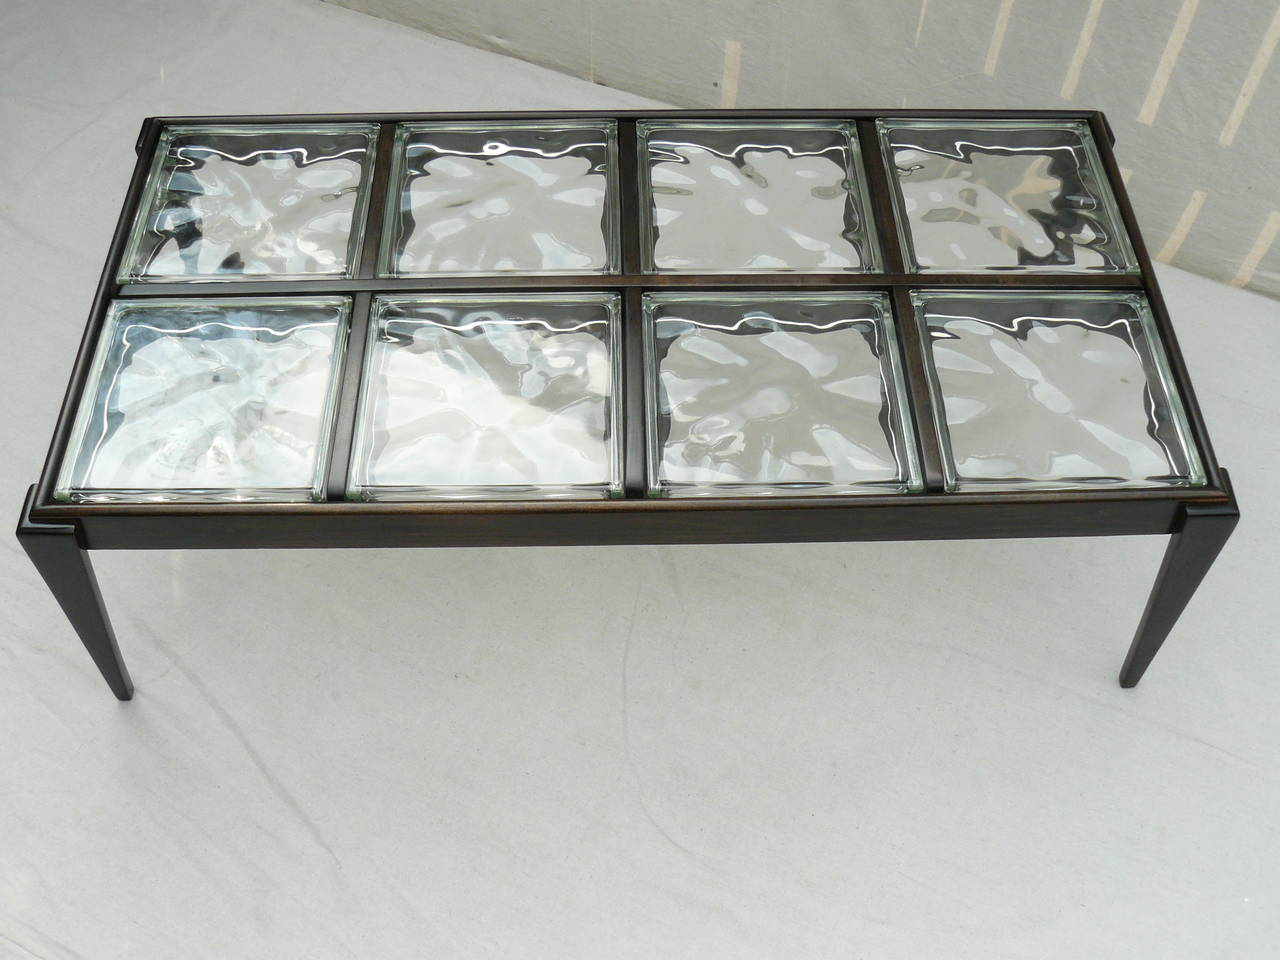 40s glass block coffee table at 1stdibs for Glass cube coffee table